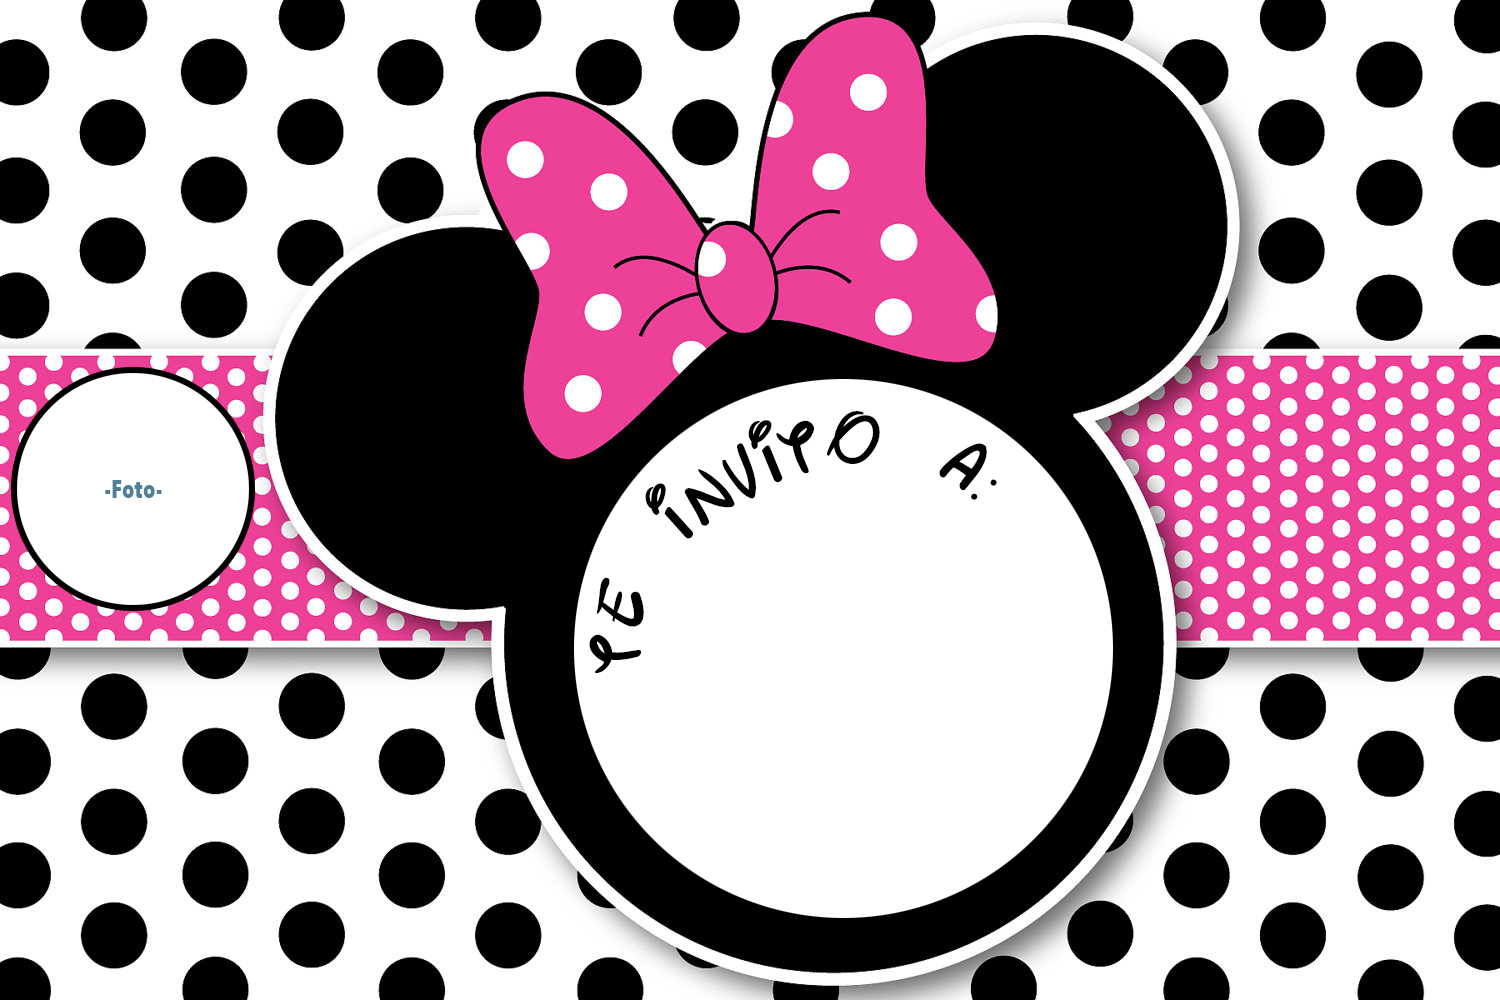 minnie-invitacion-blanco